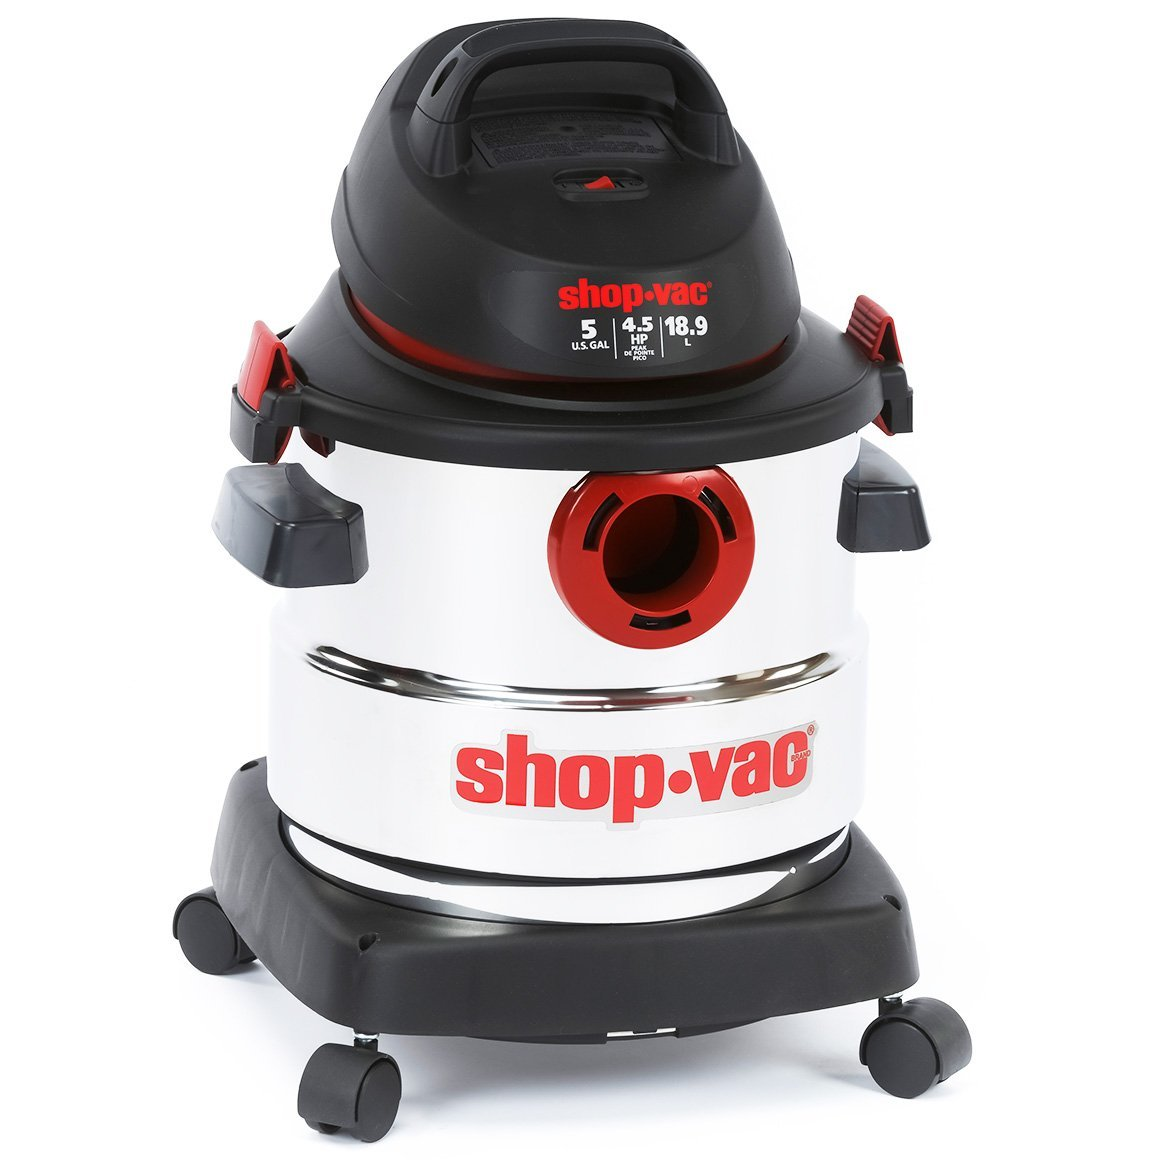 Shop-Vac 5989300 5 Gallon 4.5 Peak HP Stainless Wet Dry Vacuum